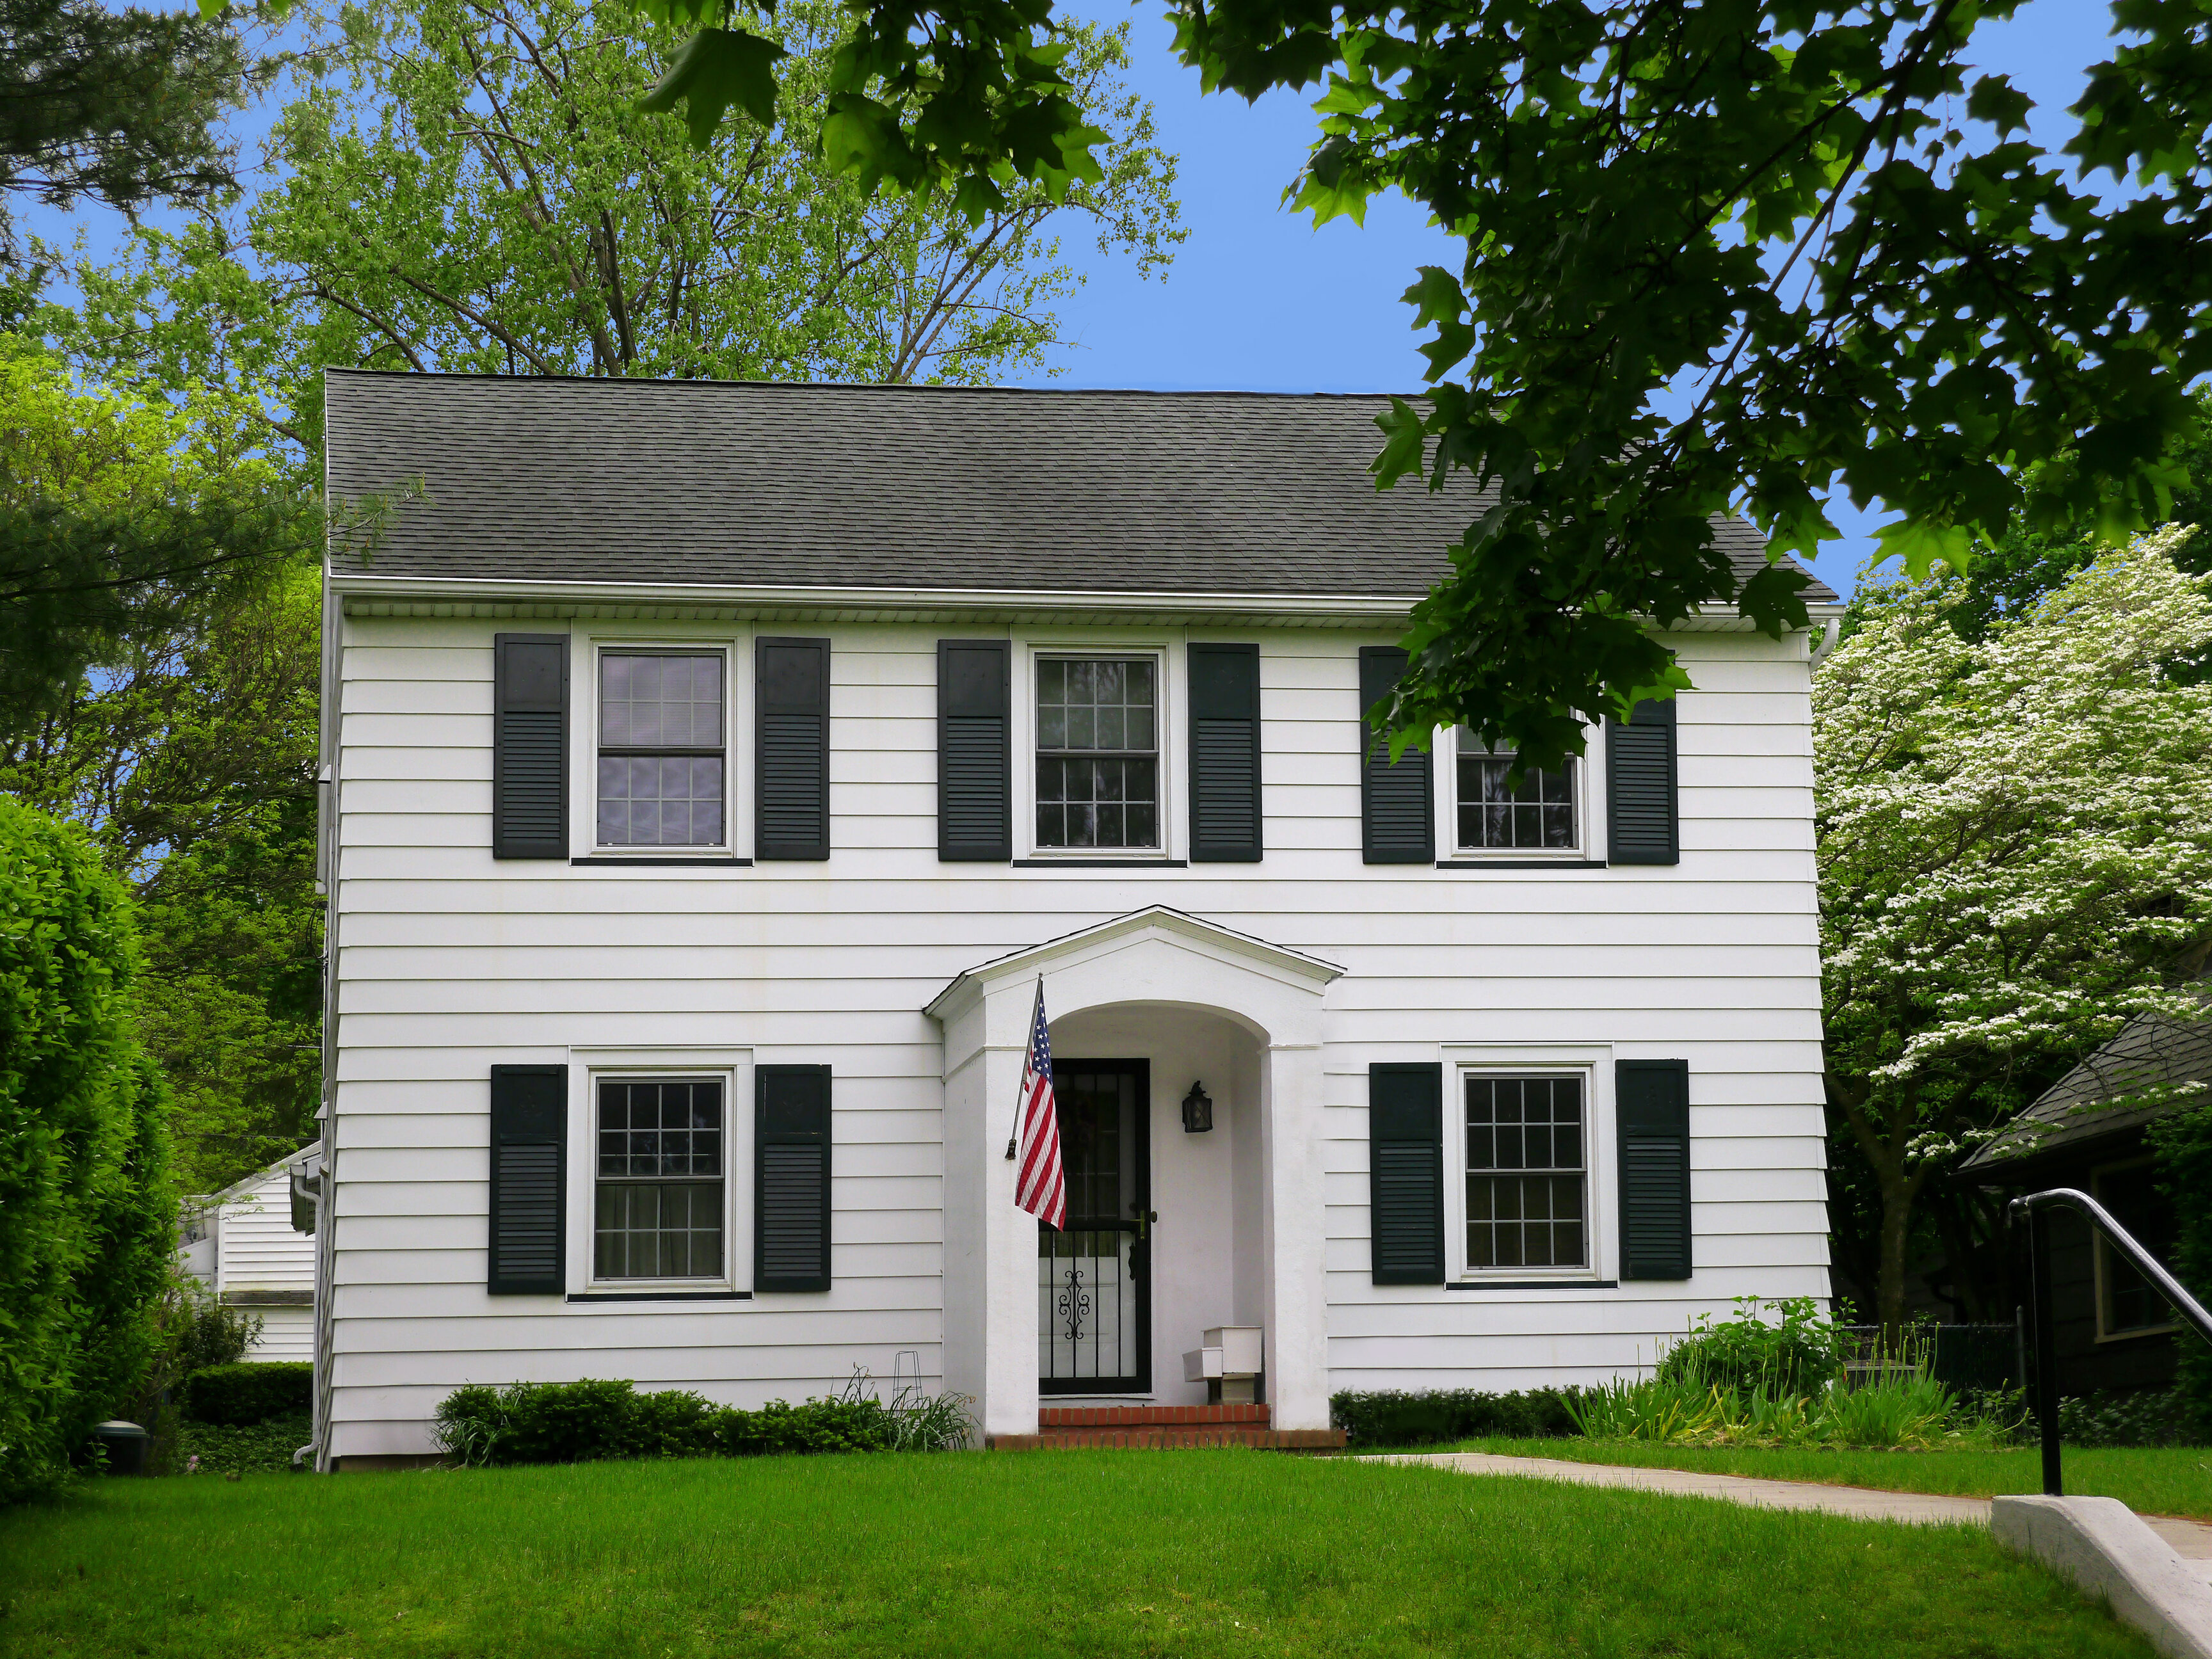 A white colonial house with black shutters, American flag, and large green trees.